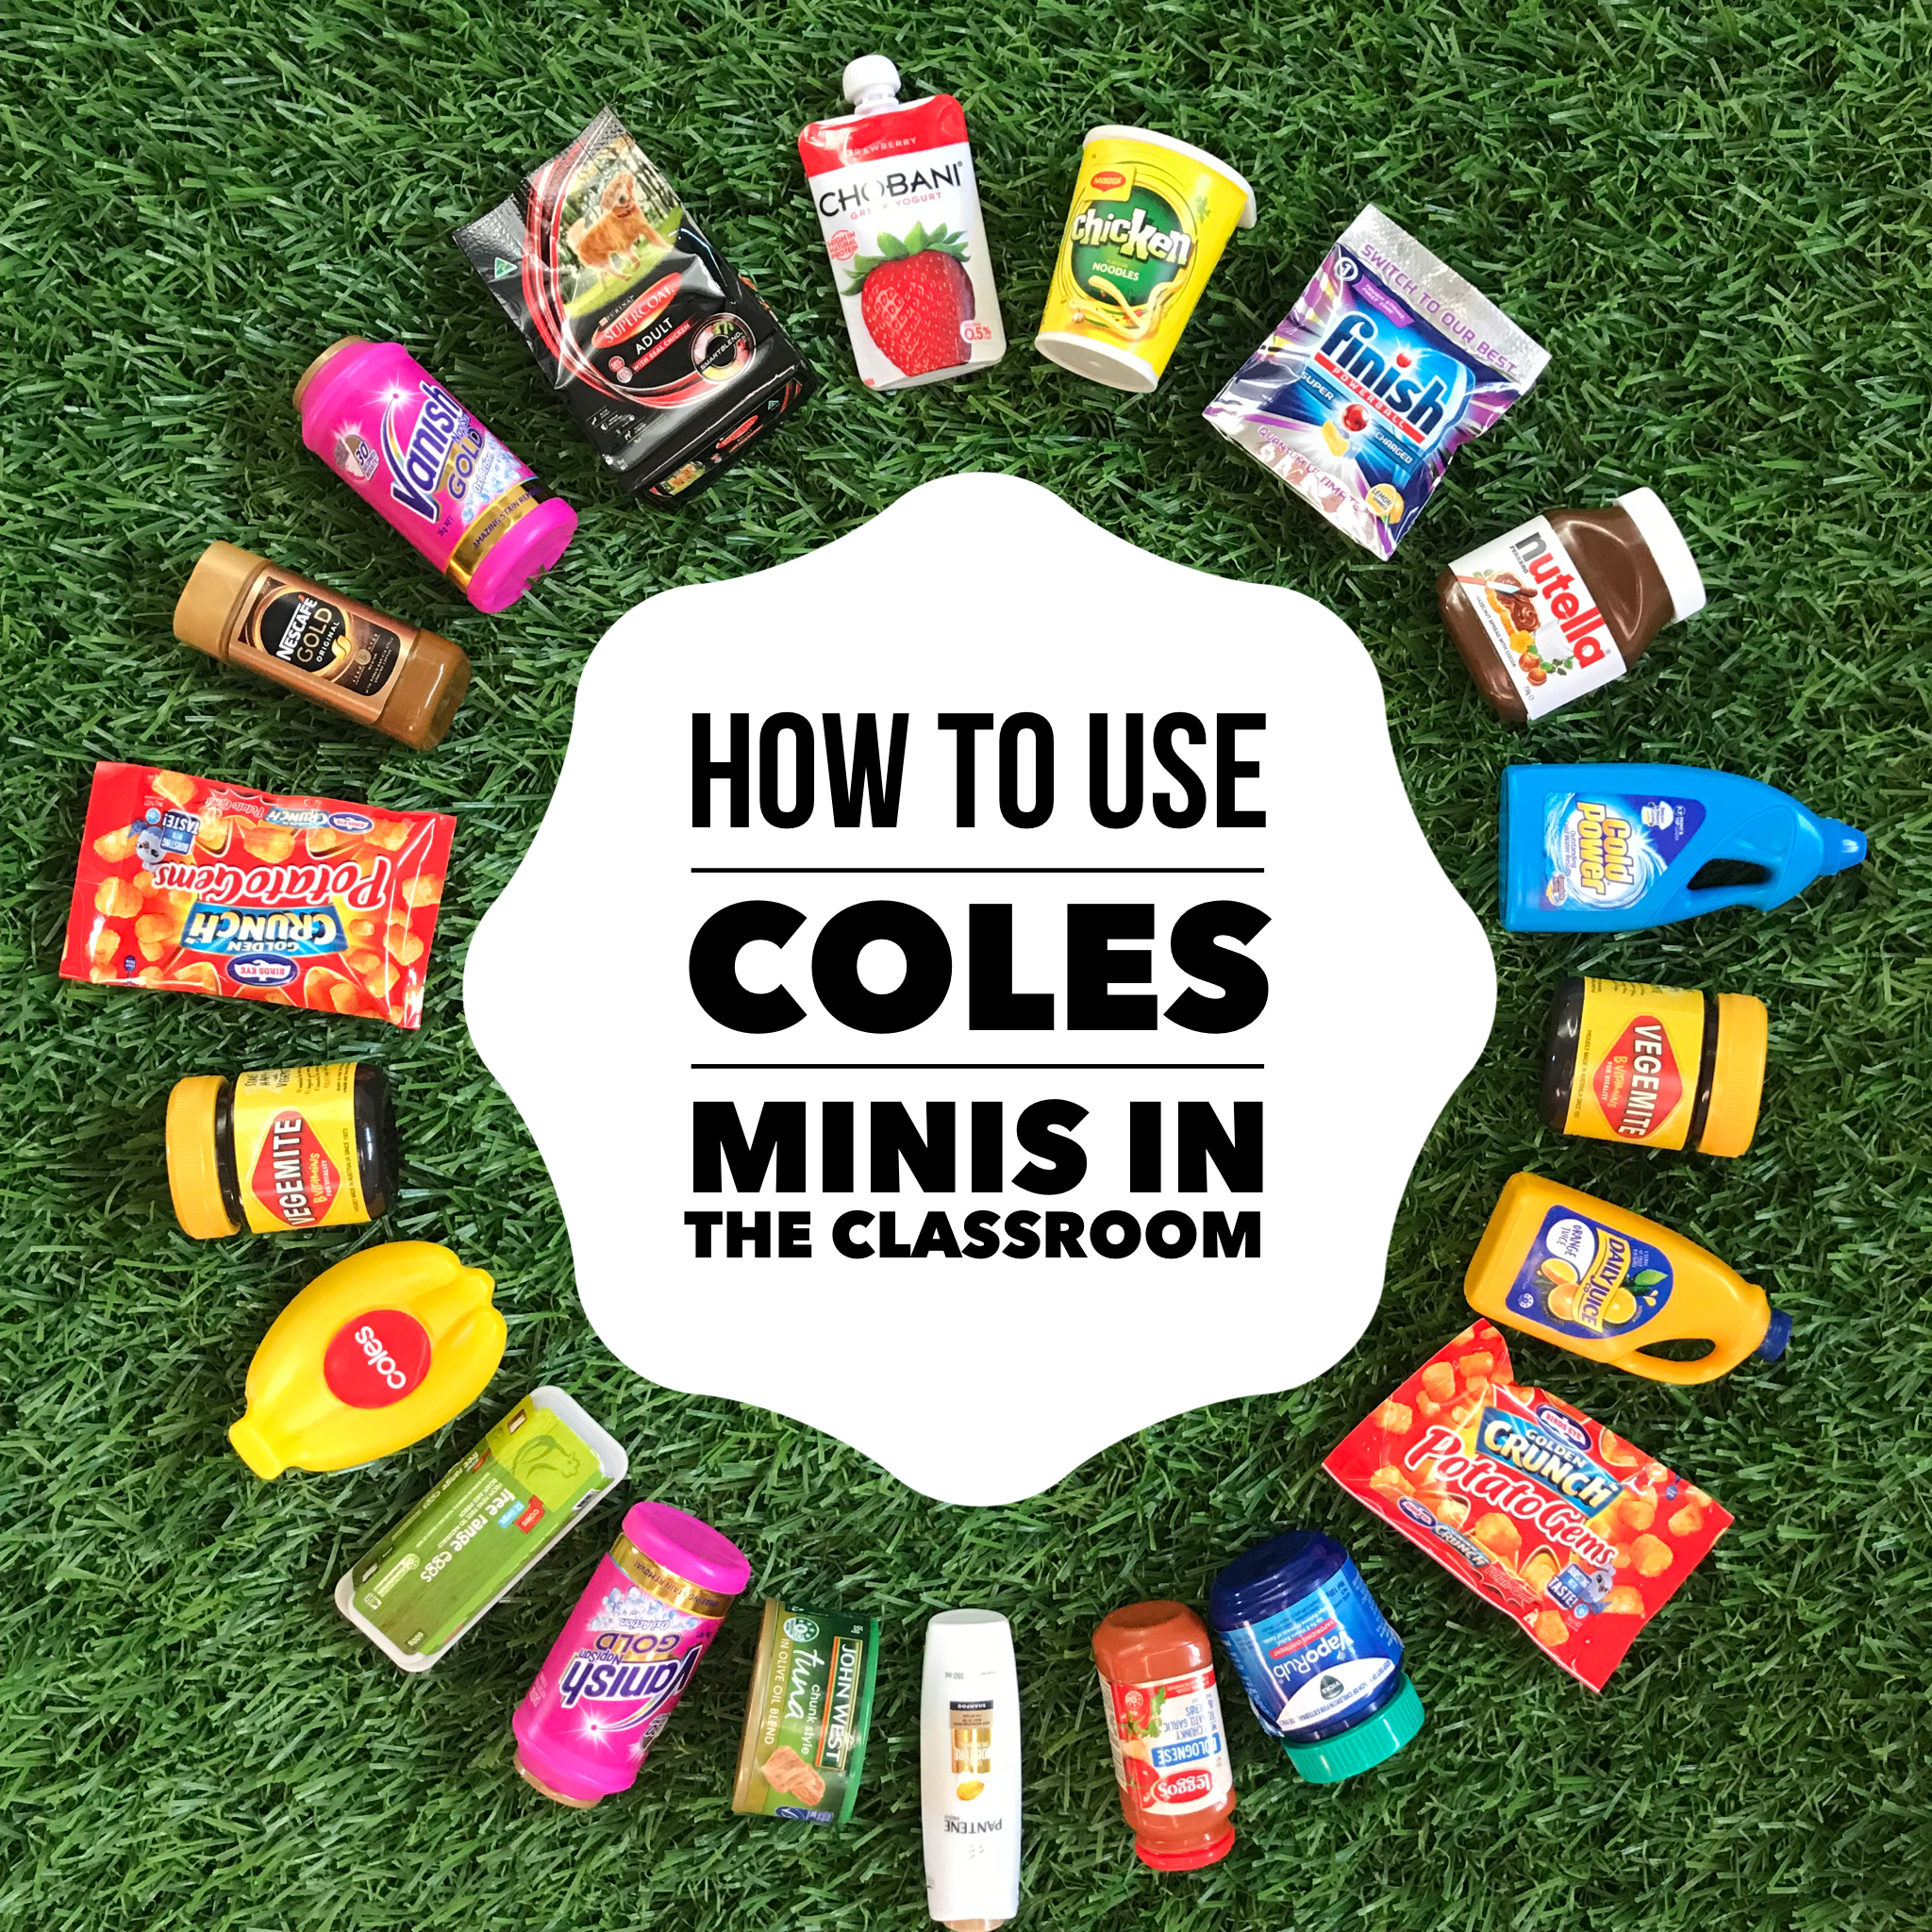 10 Educational Ways To Use Coles Minis In The Classroom